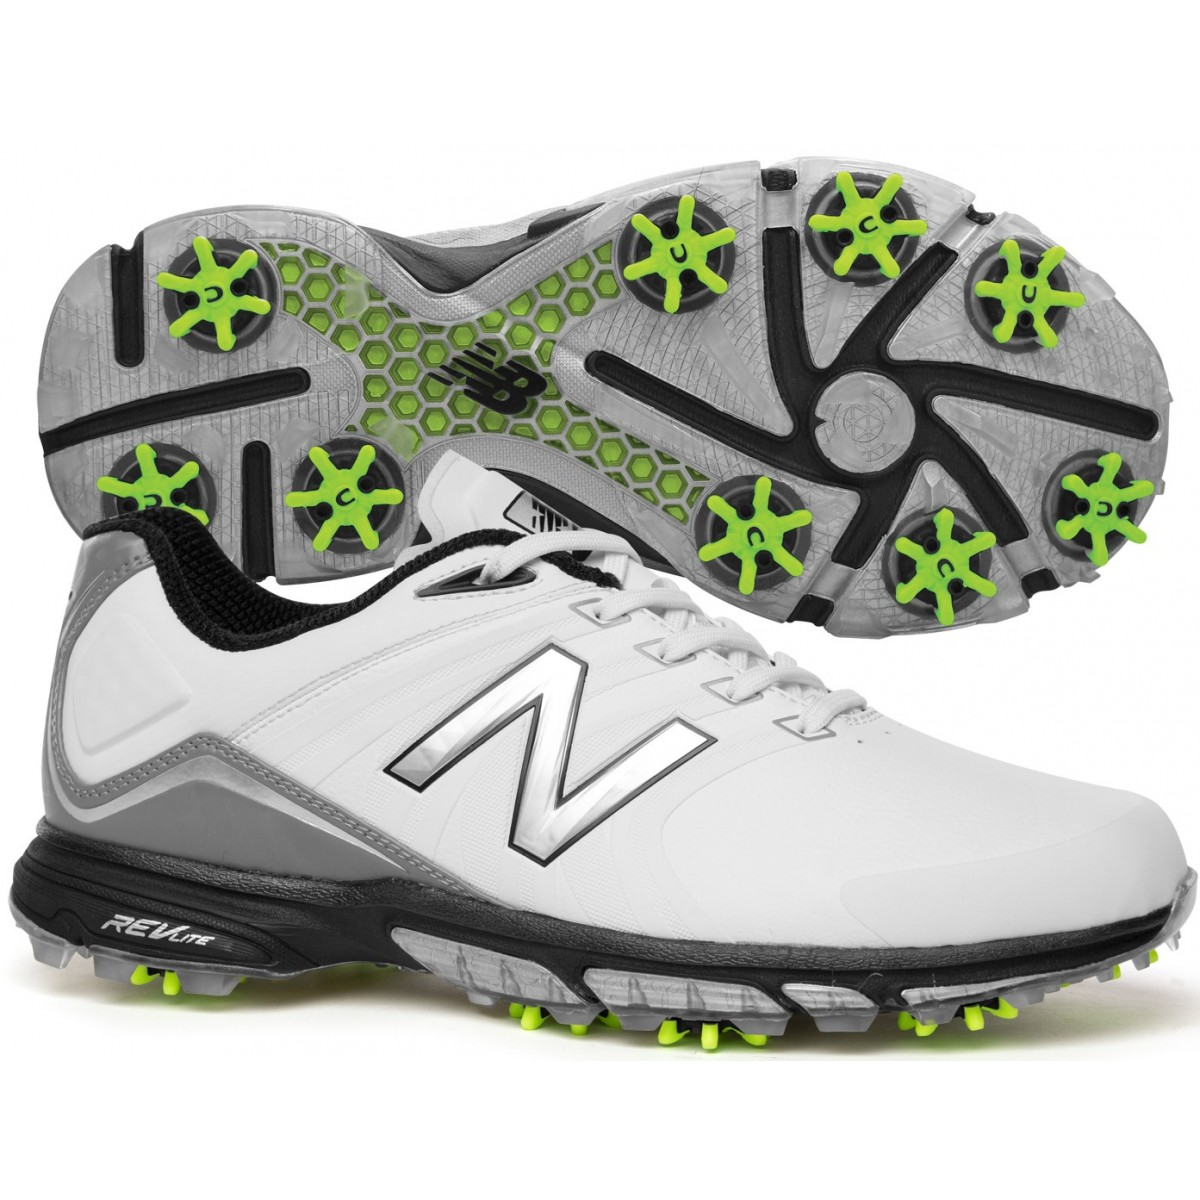 a7e56a803ed7f Details about New Balance Control NBG 3001 Mens Golf Shoes - White/Green -  Pick Size